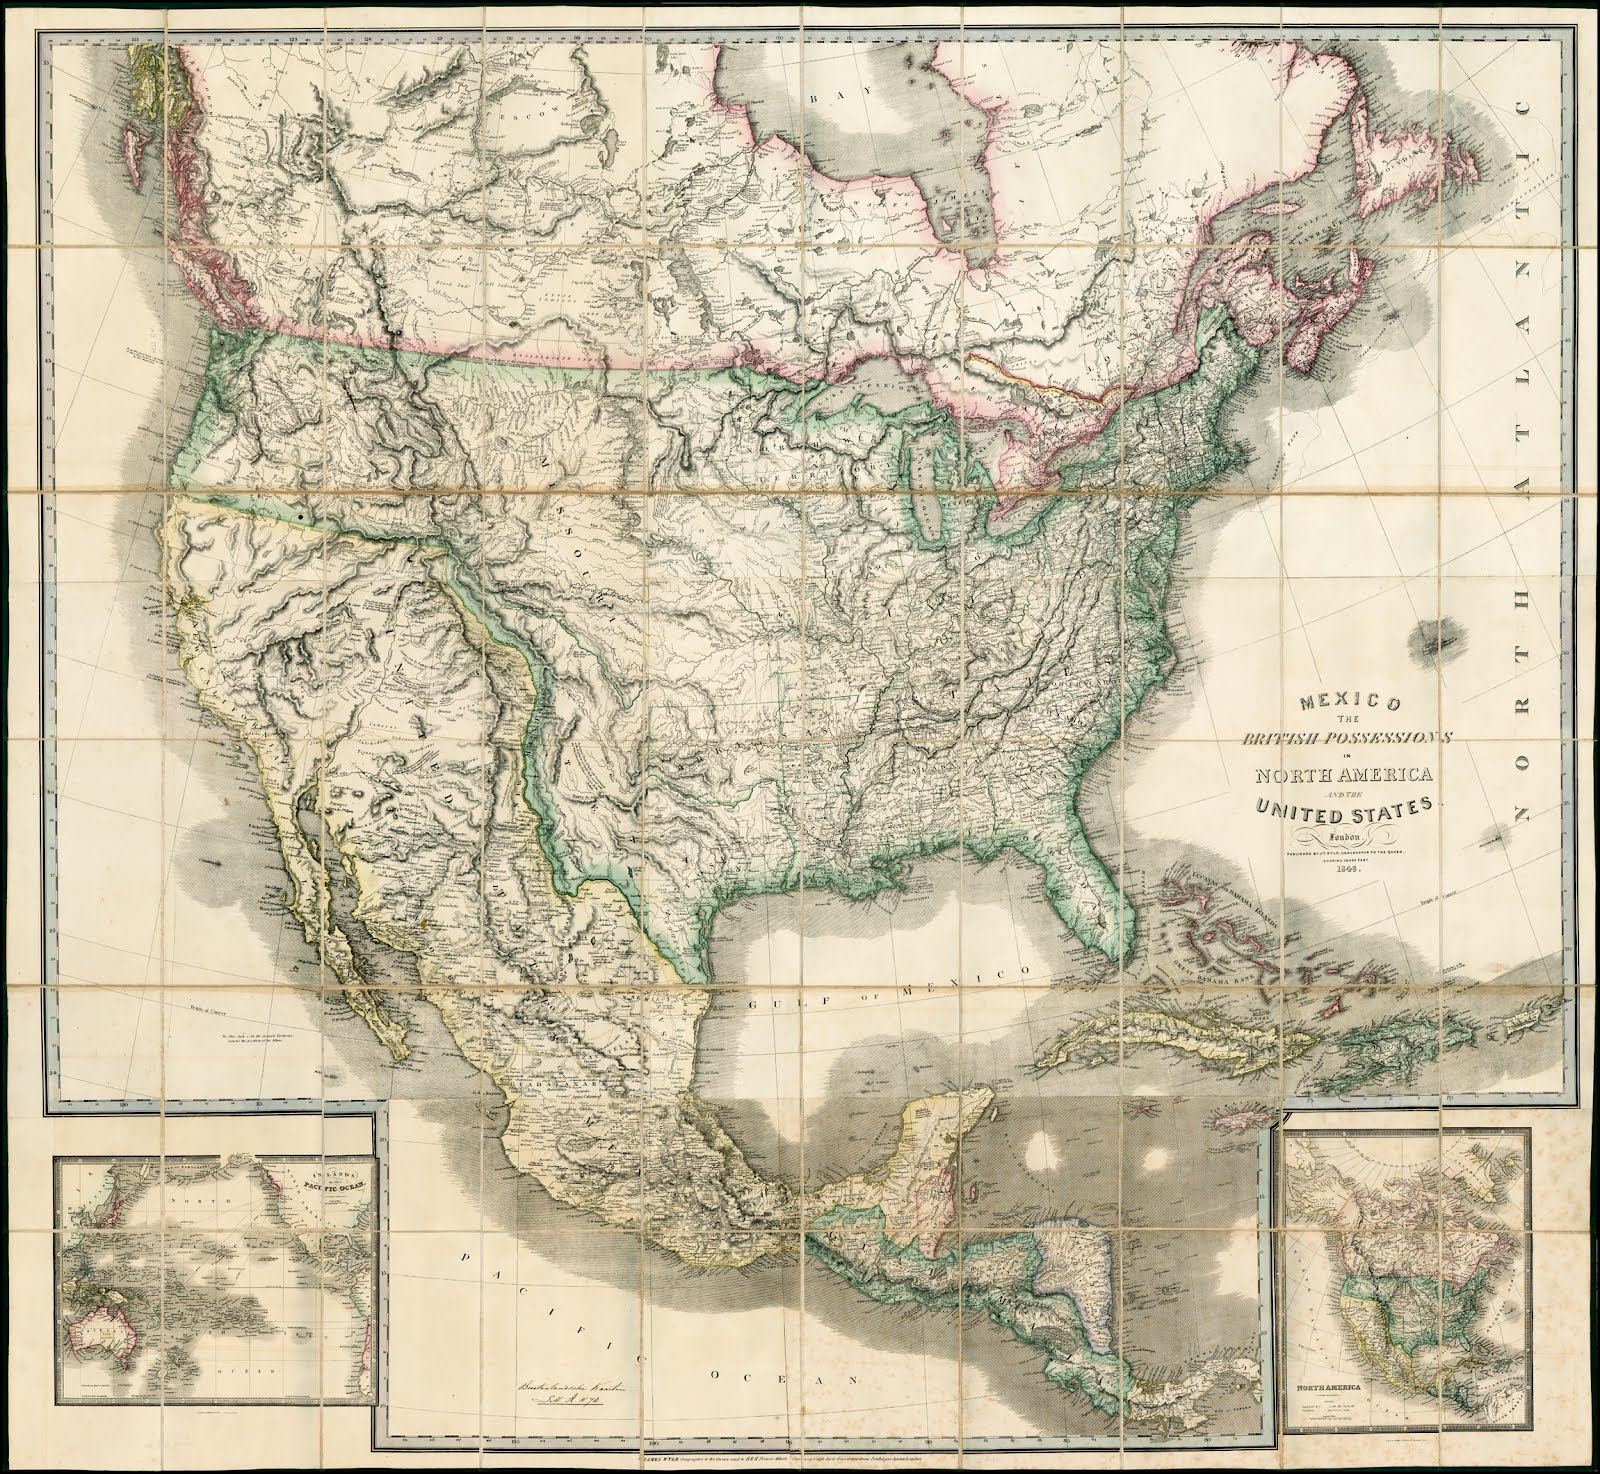 Still There Was Considerable Pressure For Texas To Become Part Of The United States